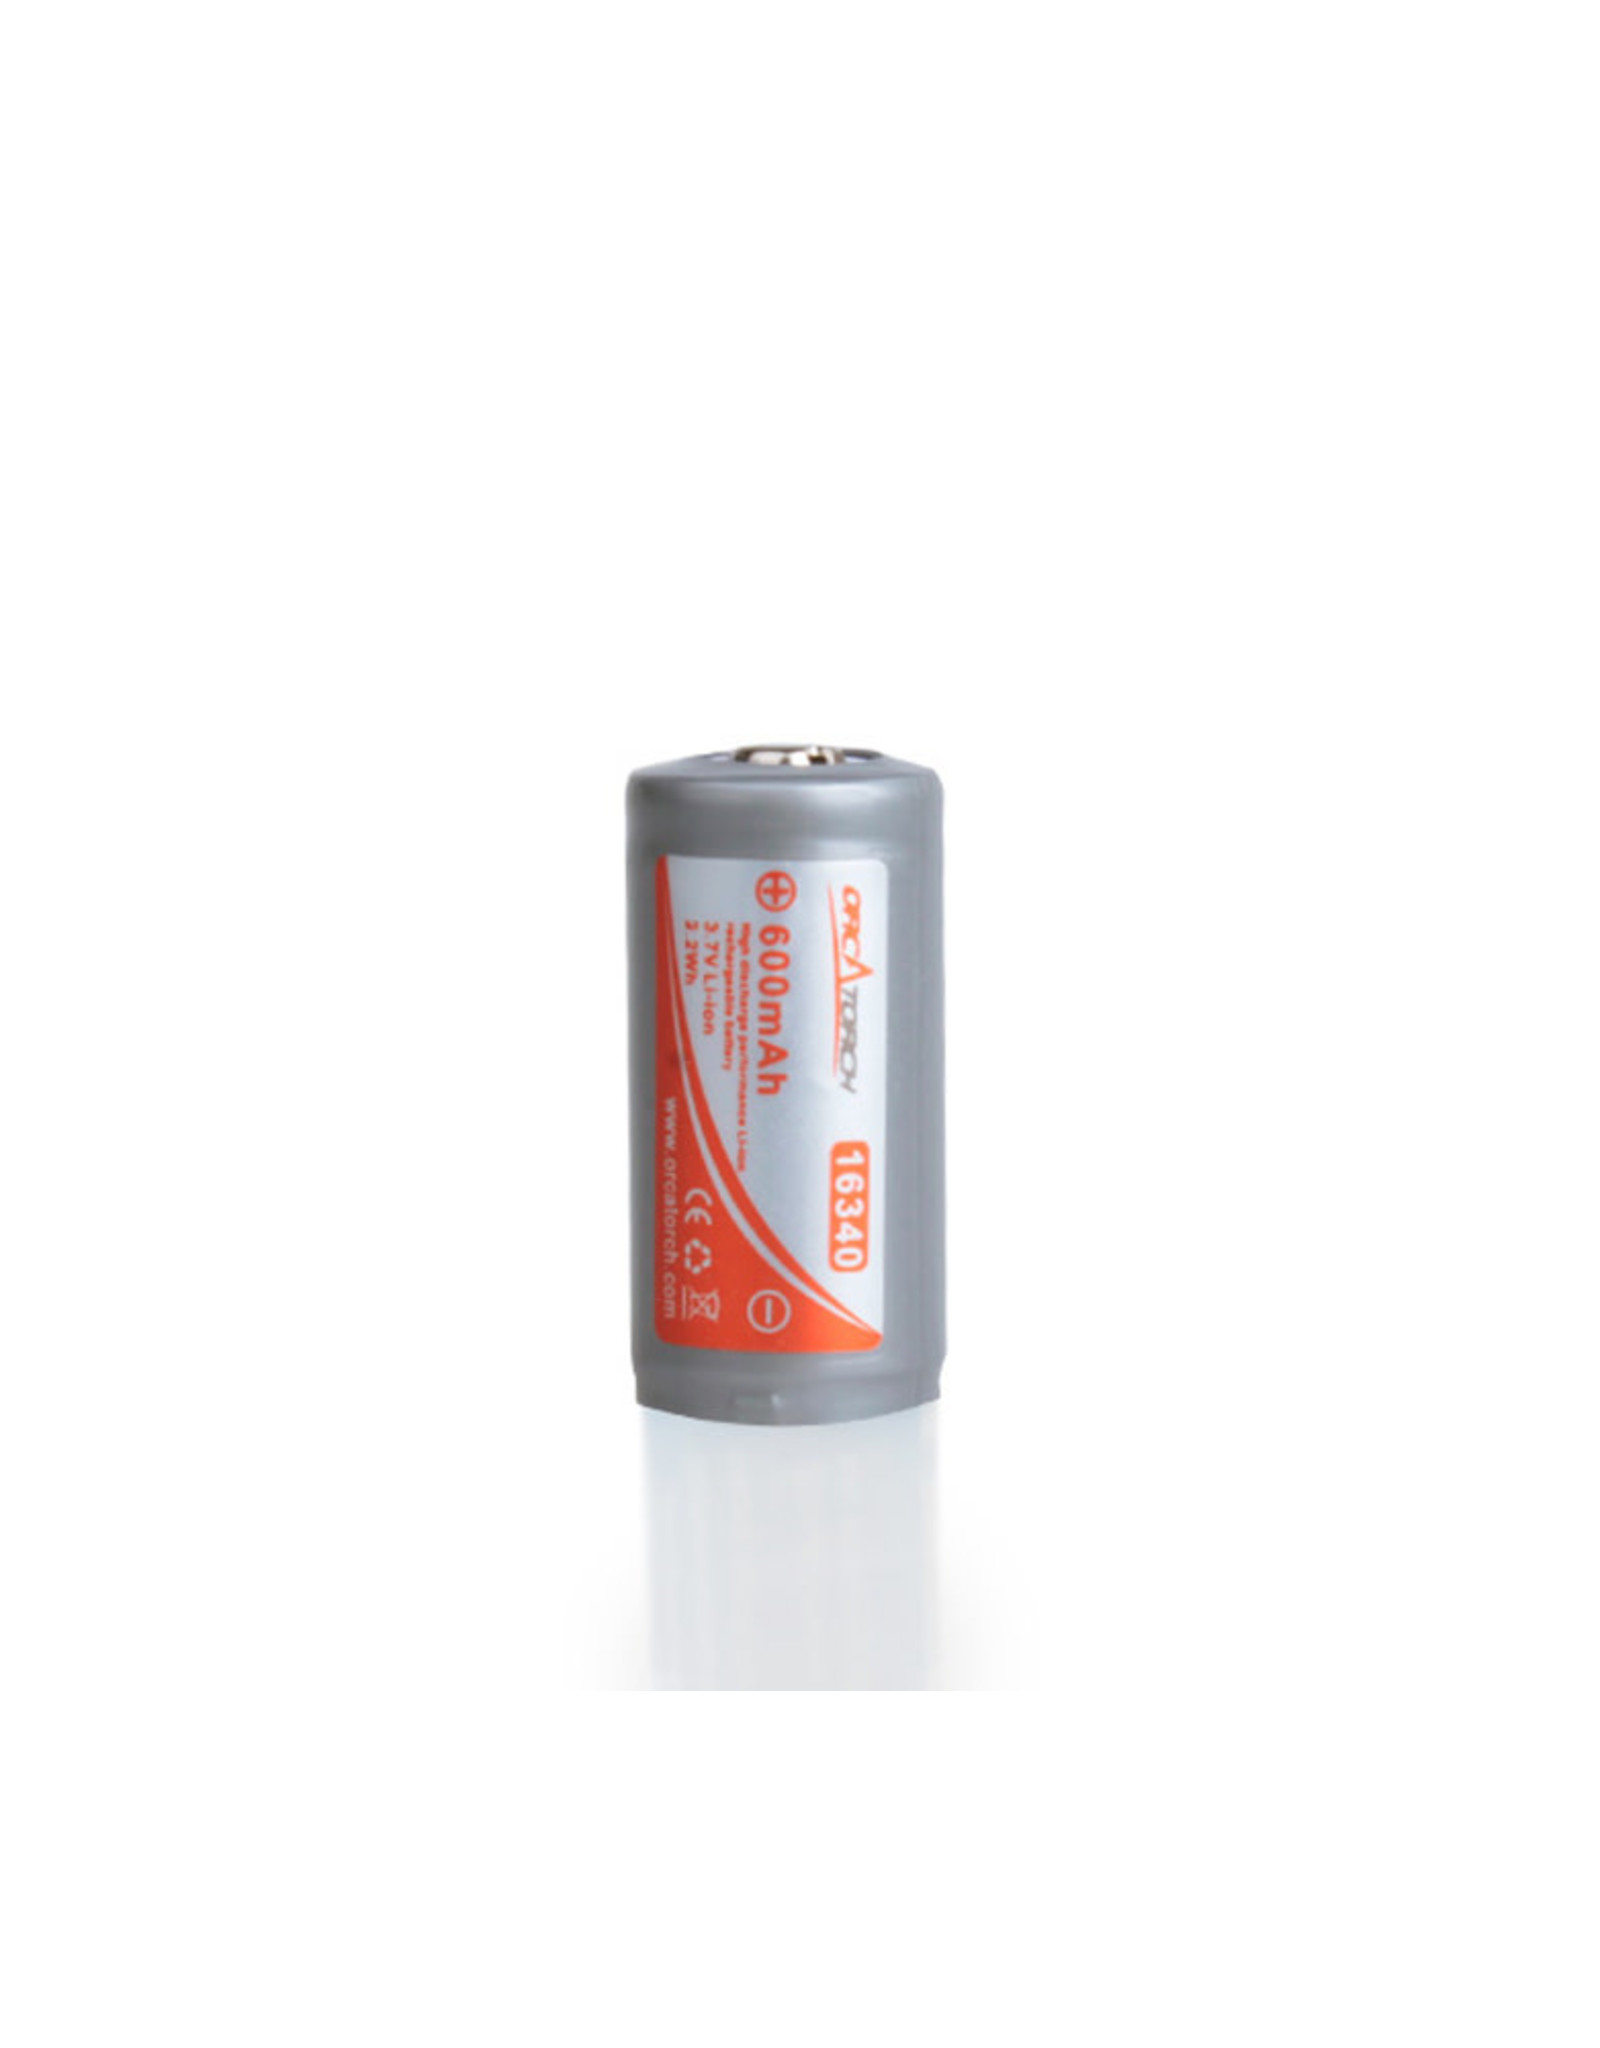 OrcaTorch 16340 Rechargeable Battery